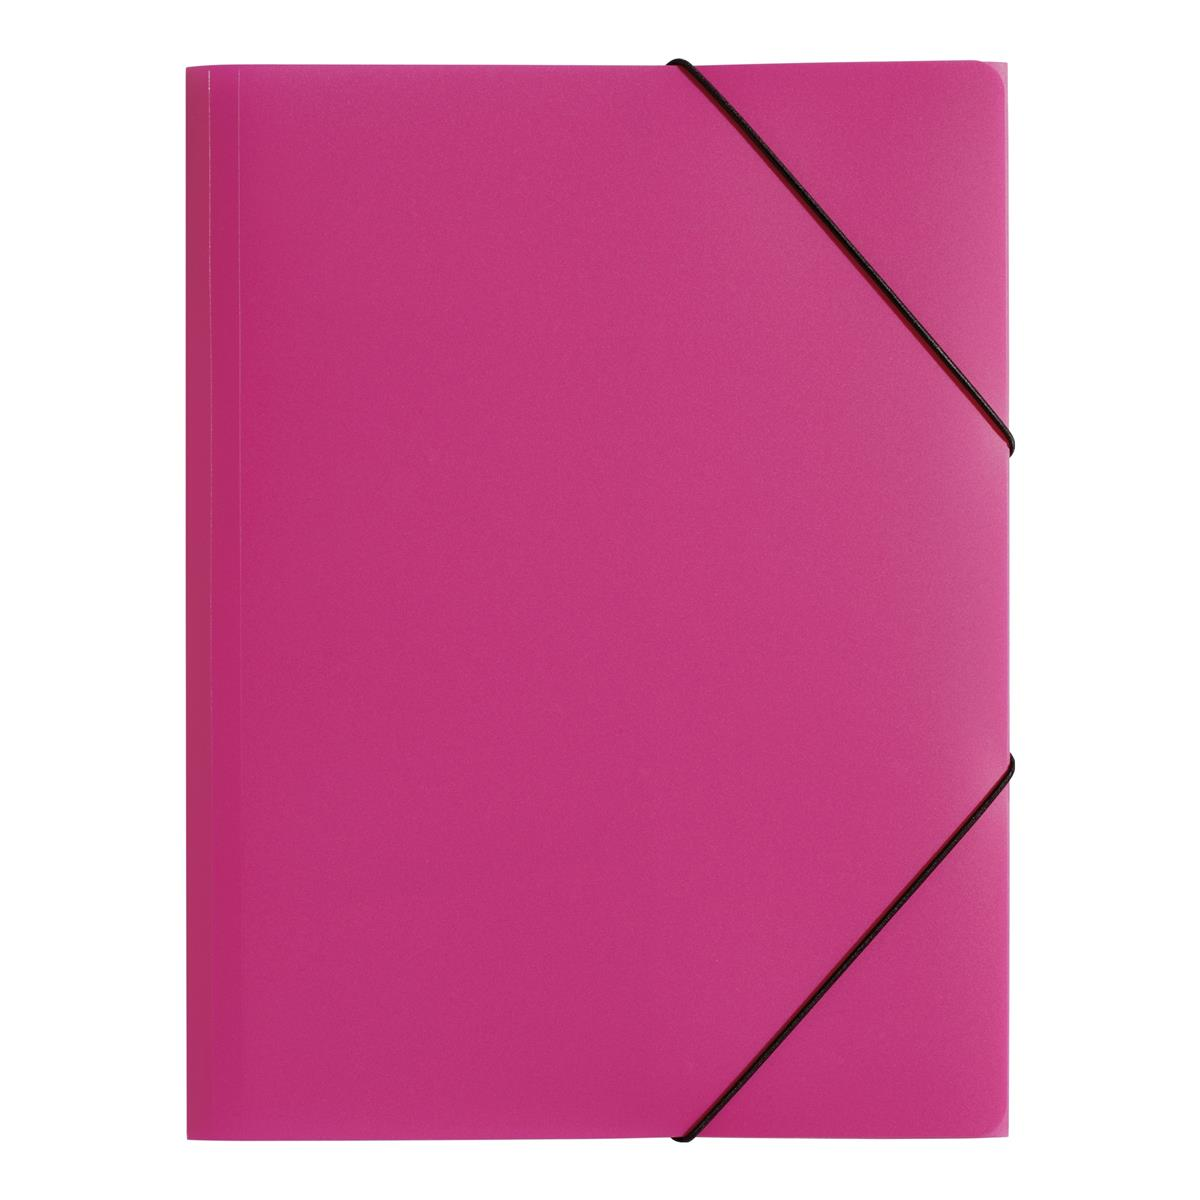 Pagna PP Folder Elasticated Straps Three Internal Flaps A4 Pink Ref 2161334 [Pack 10]